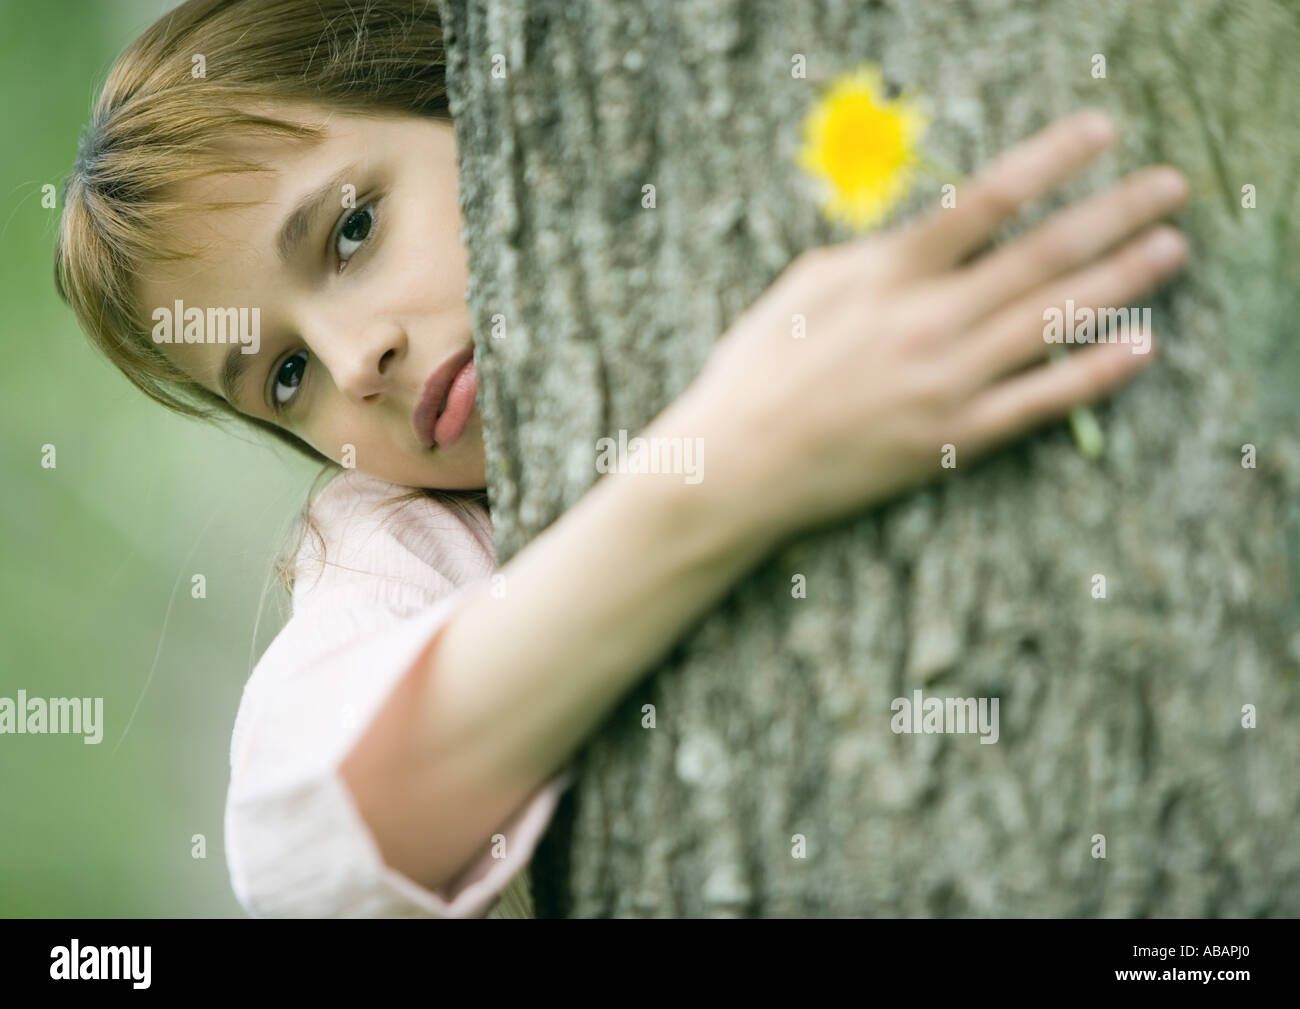 Girl with arm around tree, holding flower - Stock Image